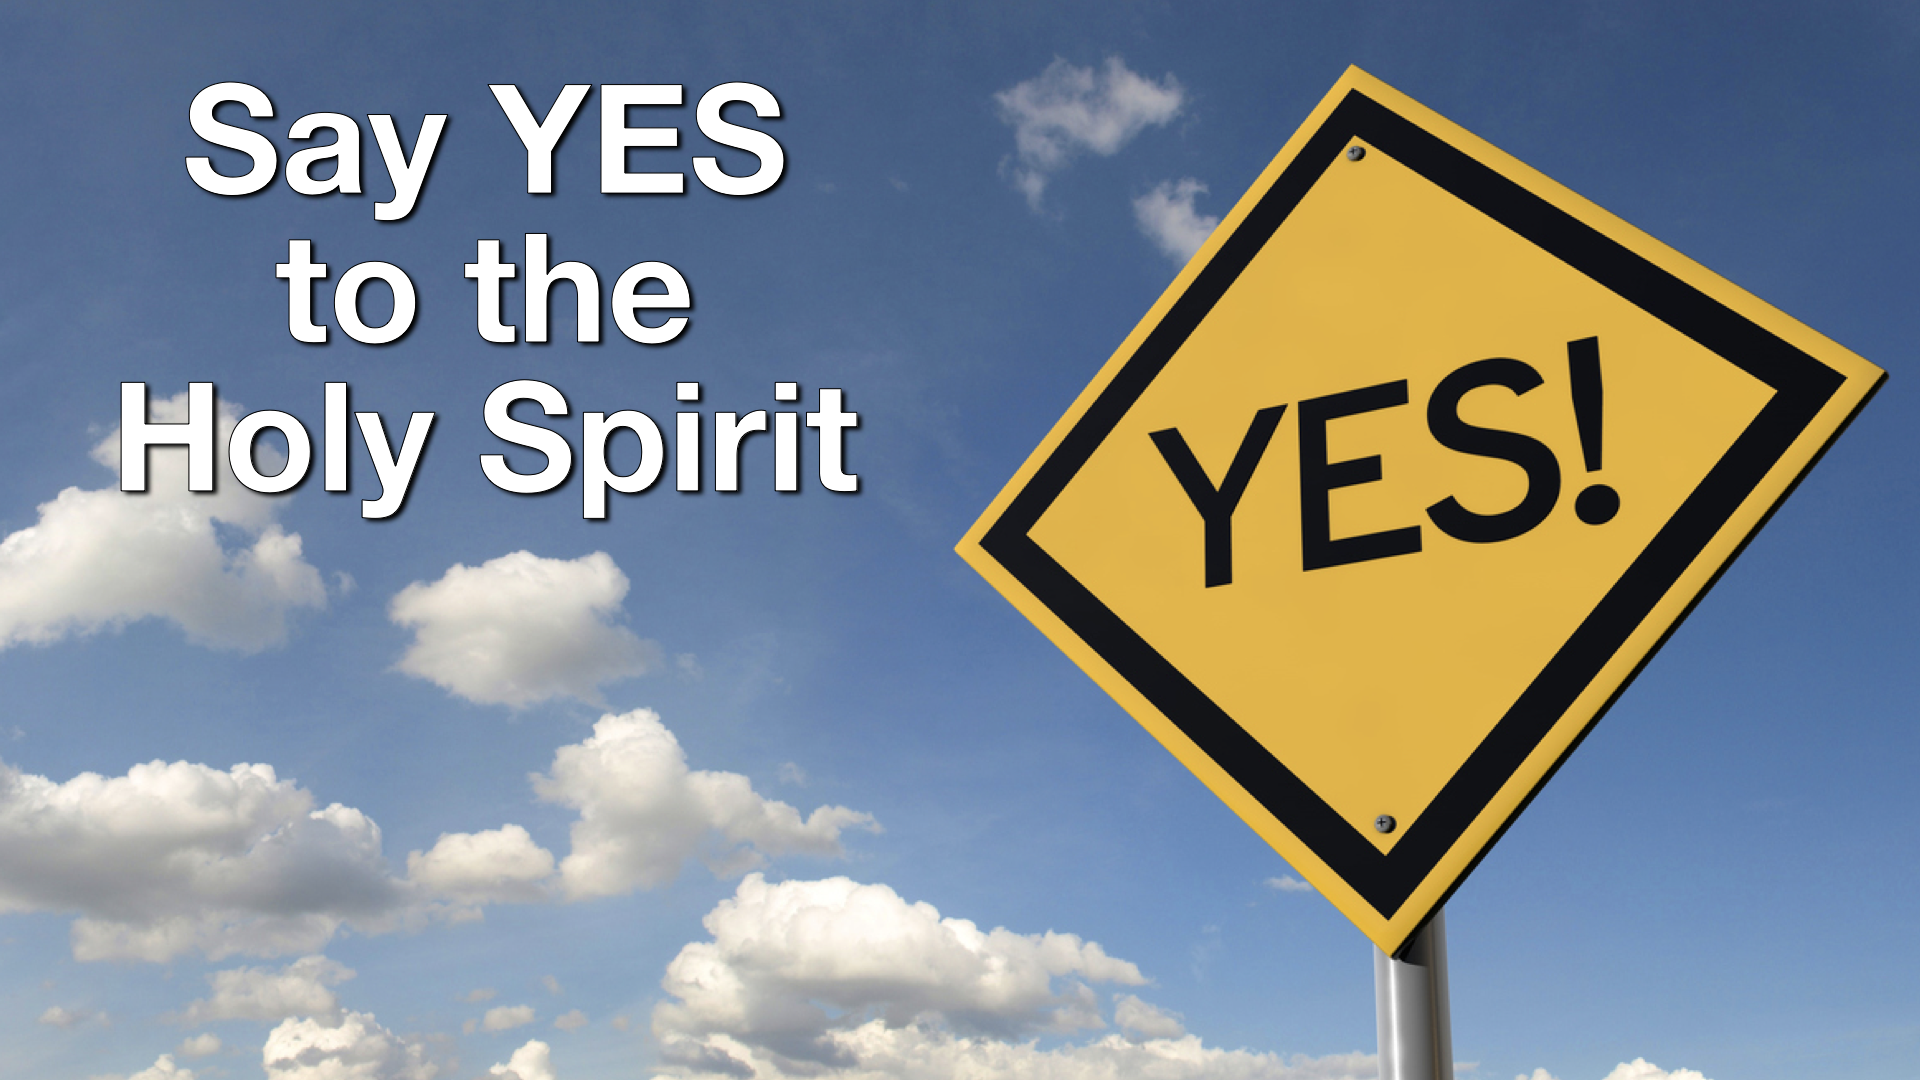 SAY YES TO THE HOLY SPIRIT (HD).001.png